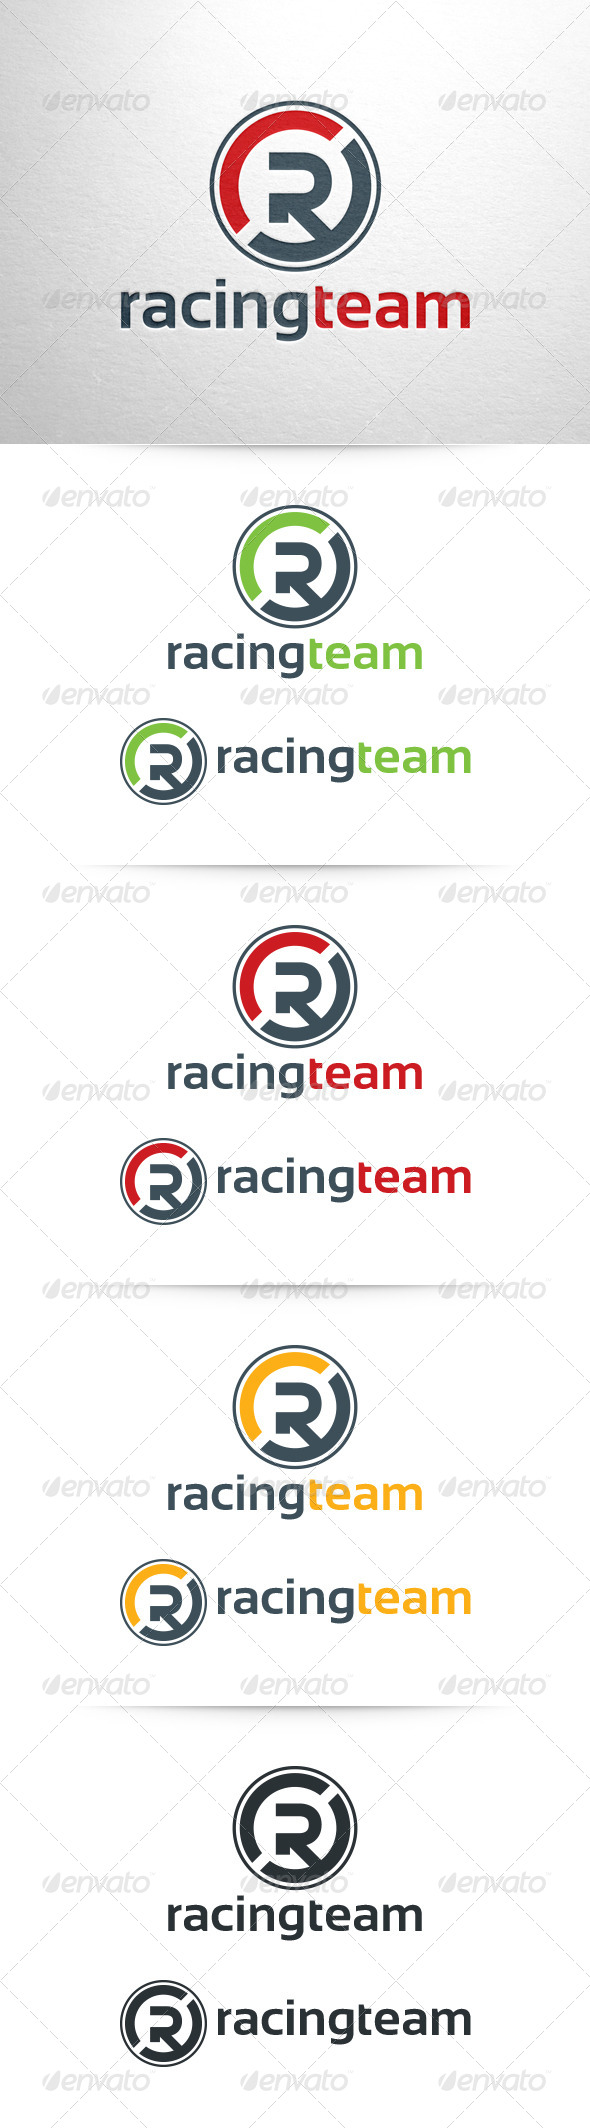 GraphicRiver Racing Team Letter R Logo Template 6459820